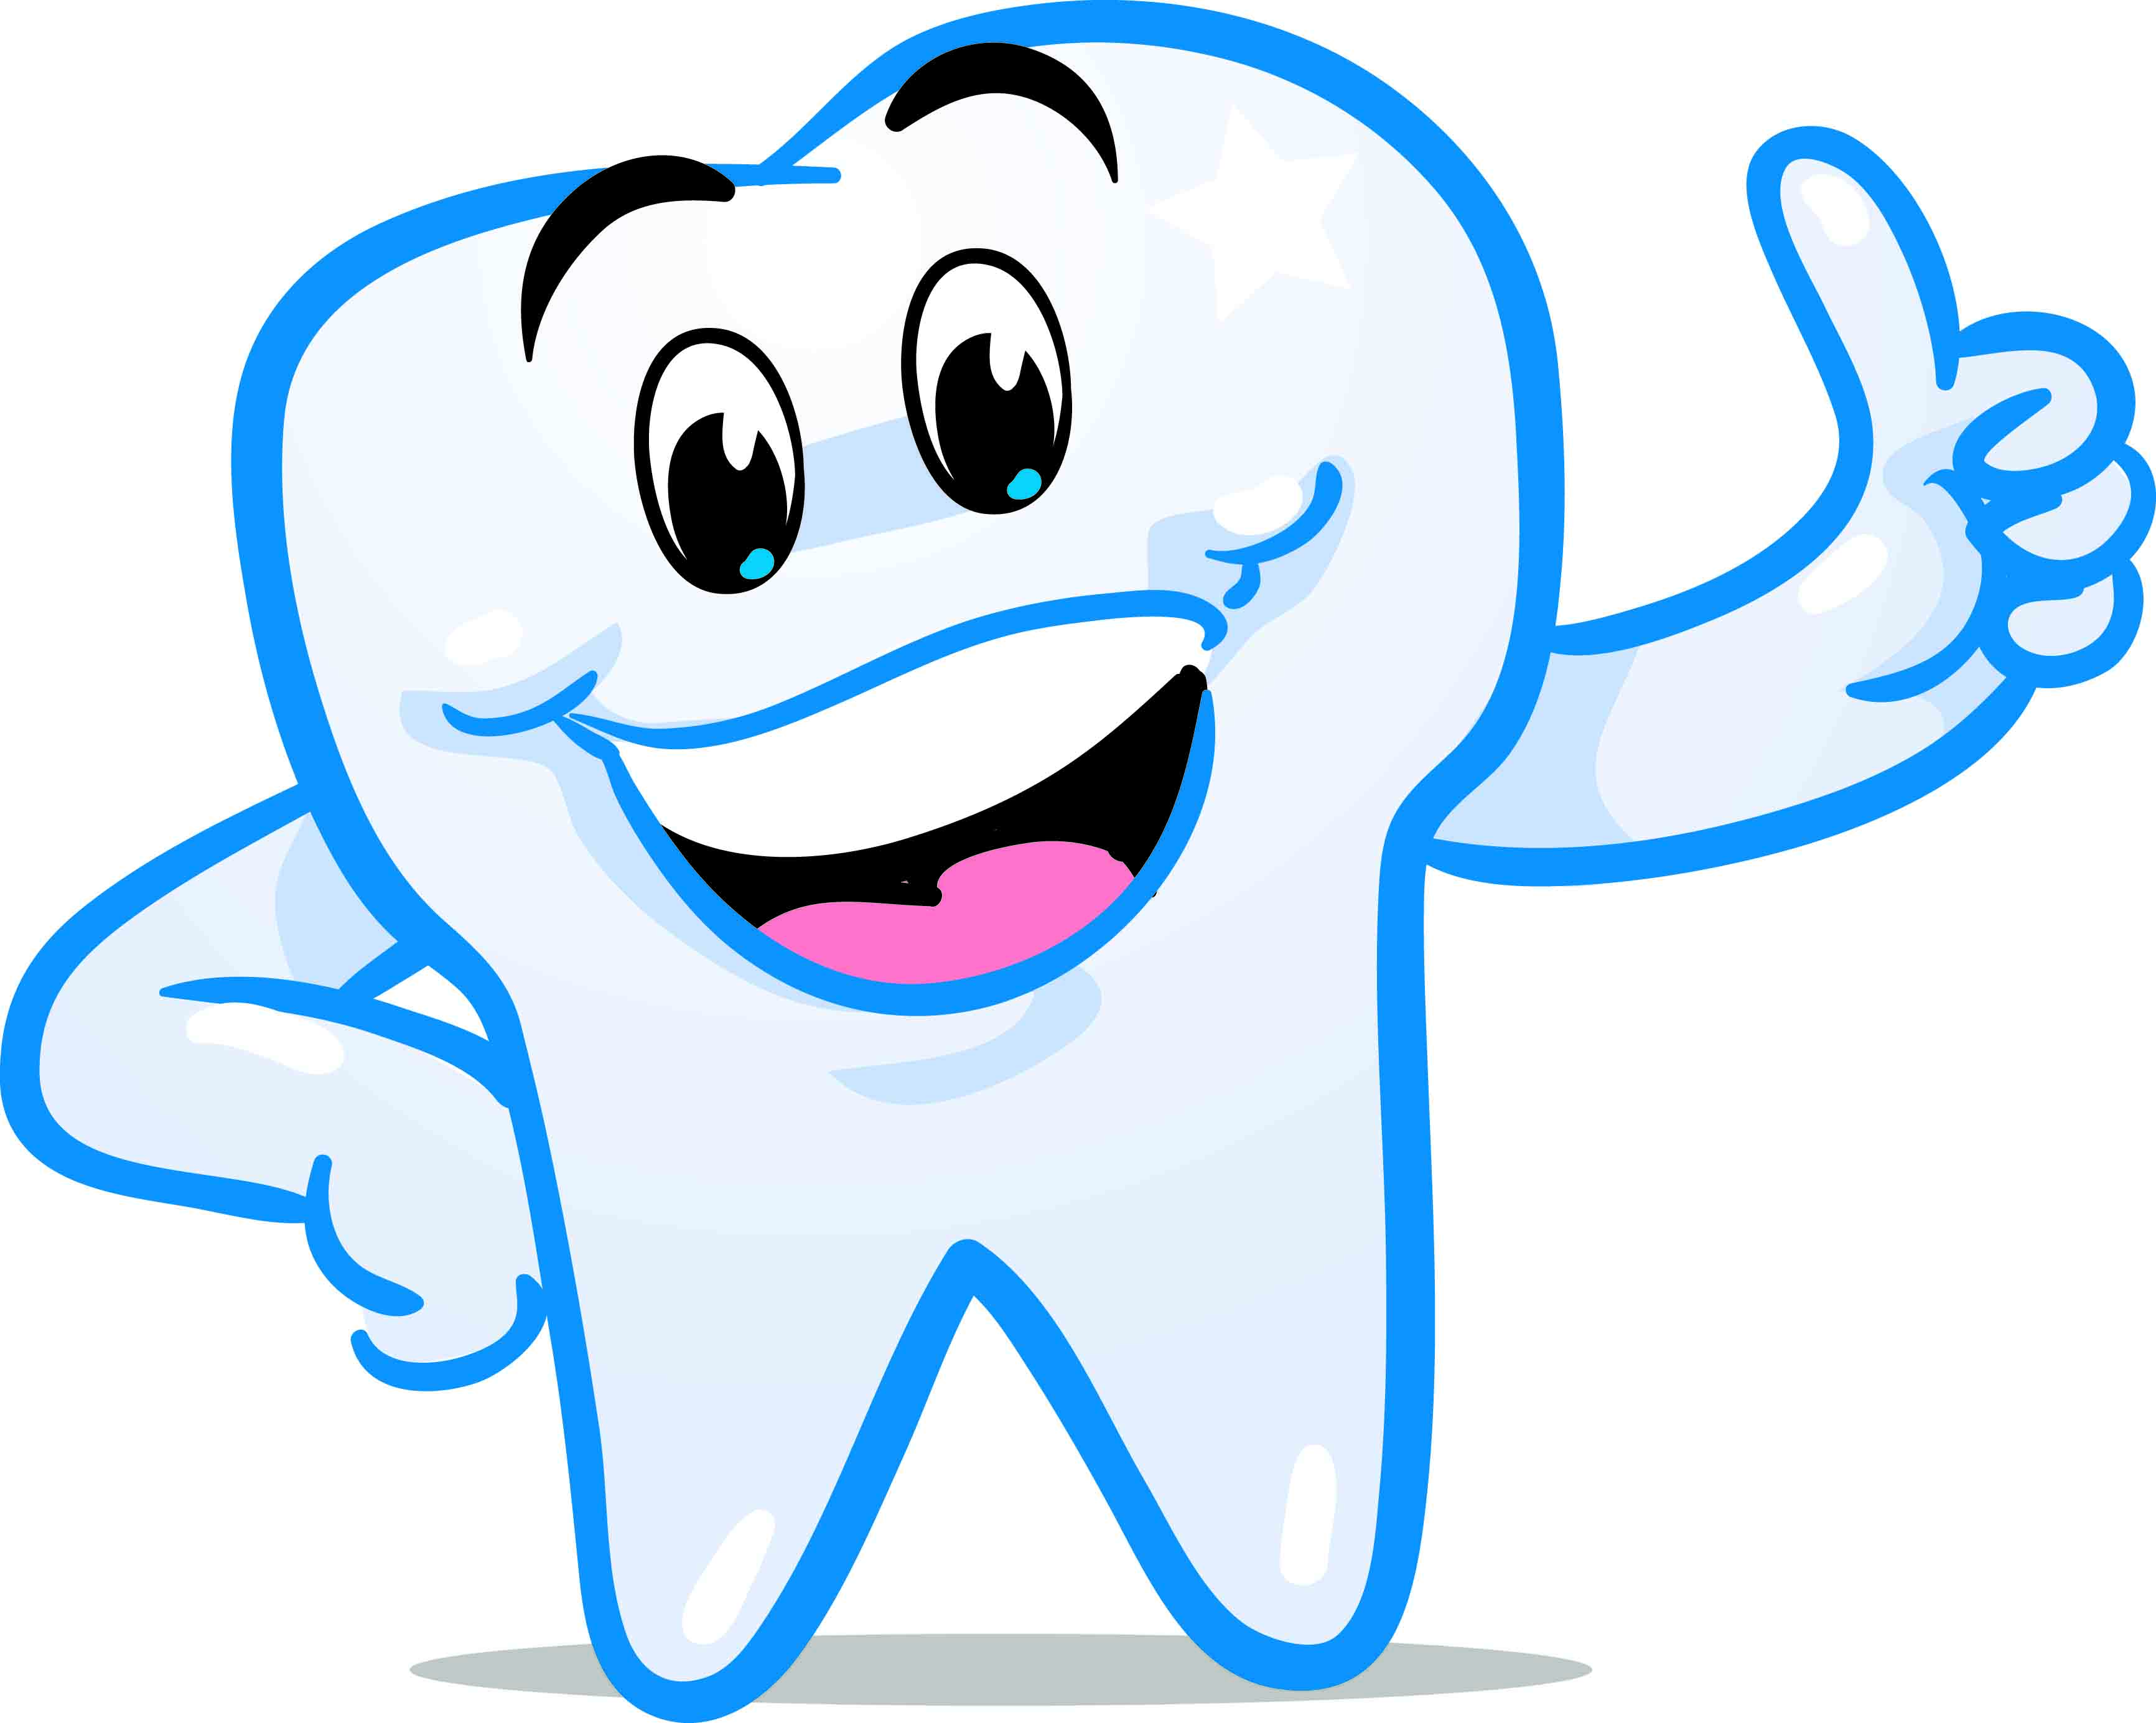 Big smile with teeth. Dental clipart image black and white library